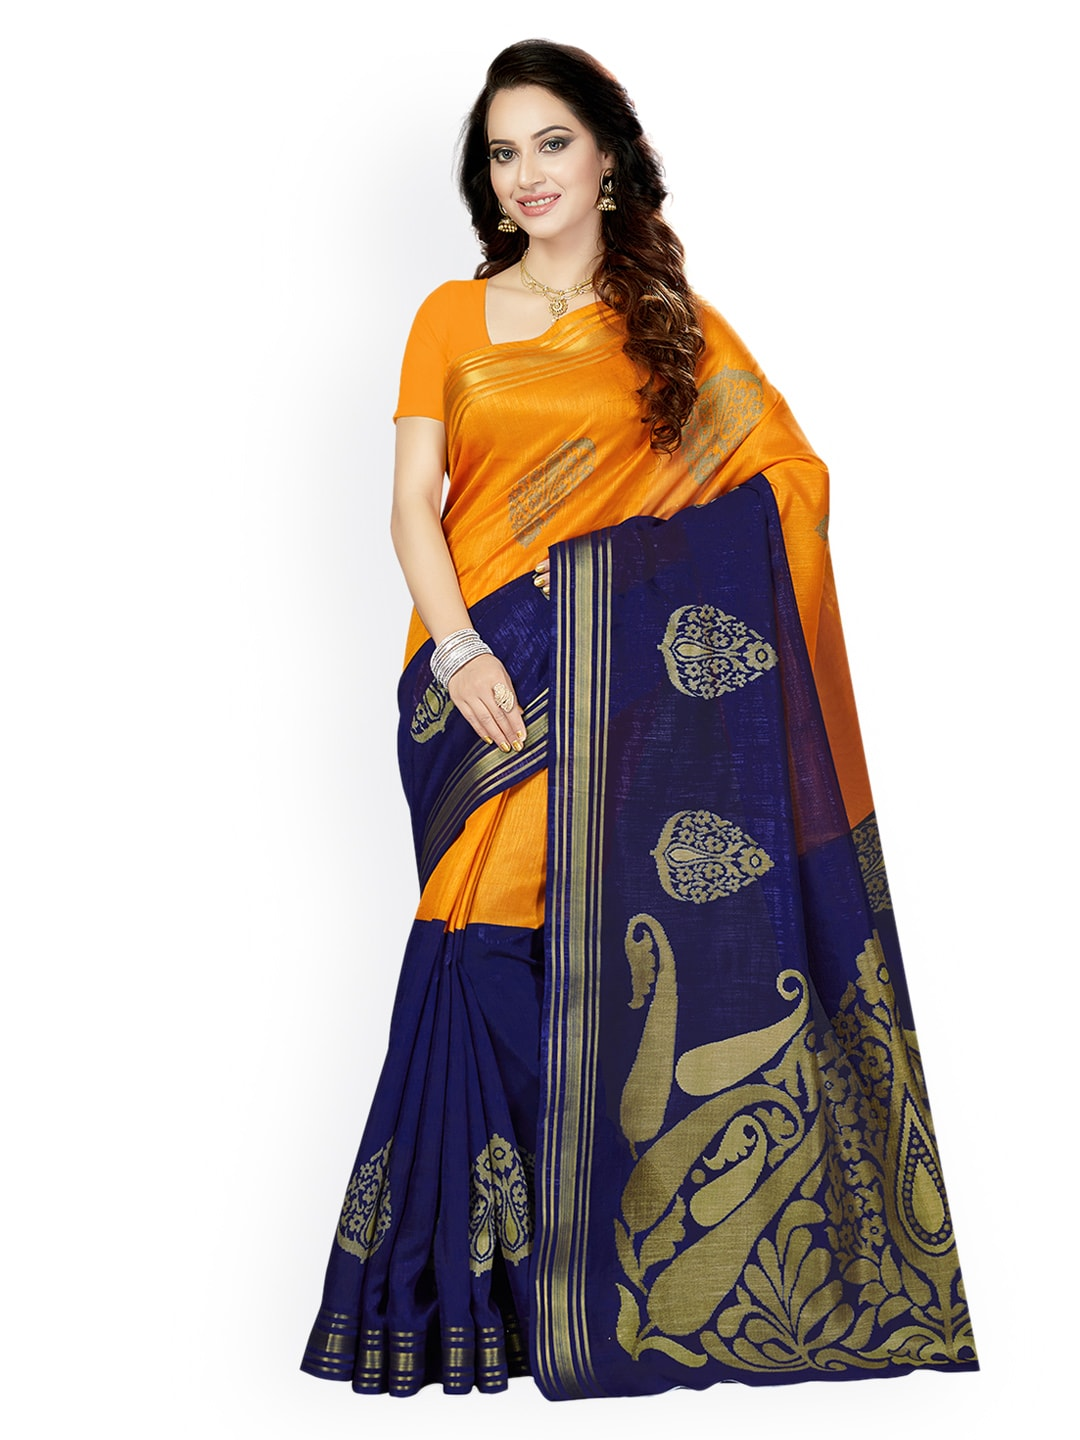 bb97e8b32357d Shrug Women Jackets Sarees Saree Blouse - Buy Shrug Women Jackets Sarees  Saree Blouse online in India